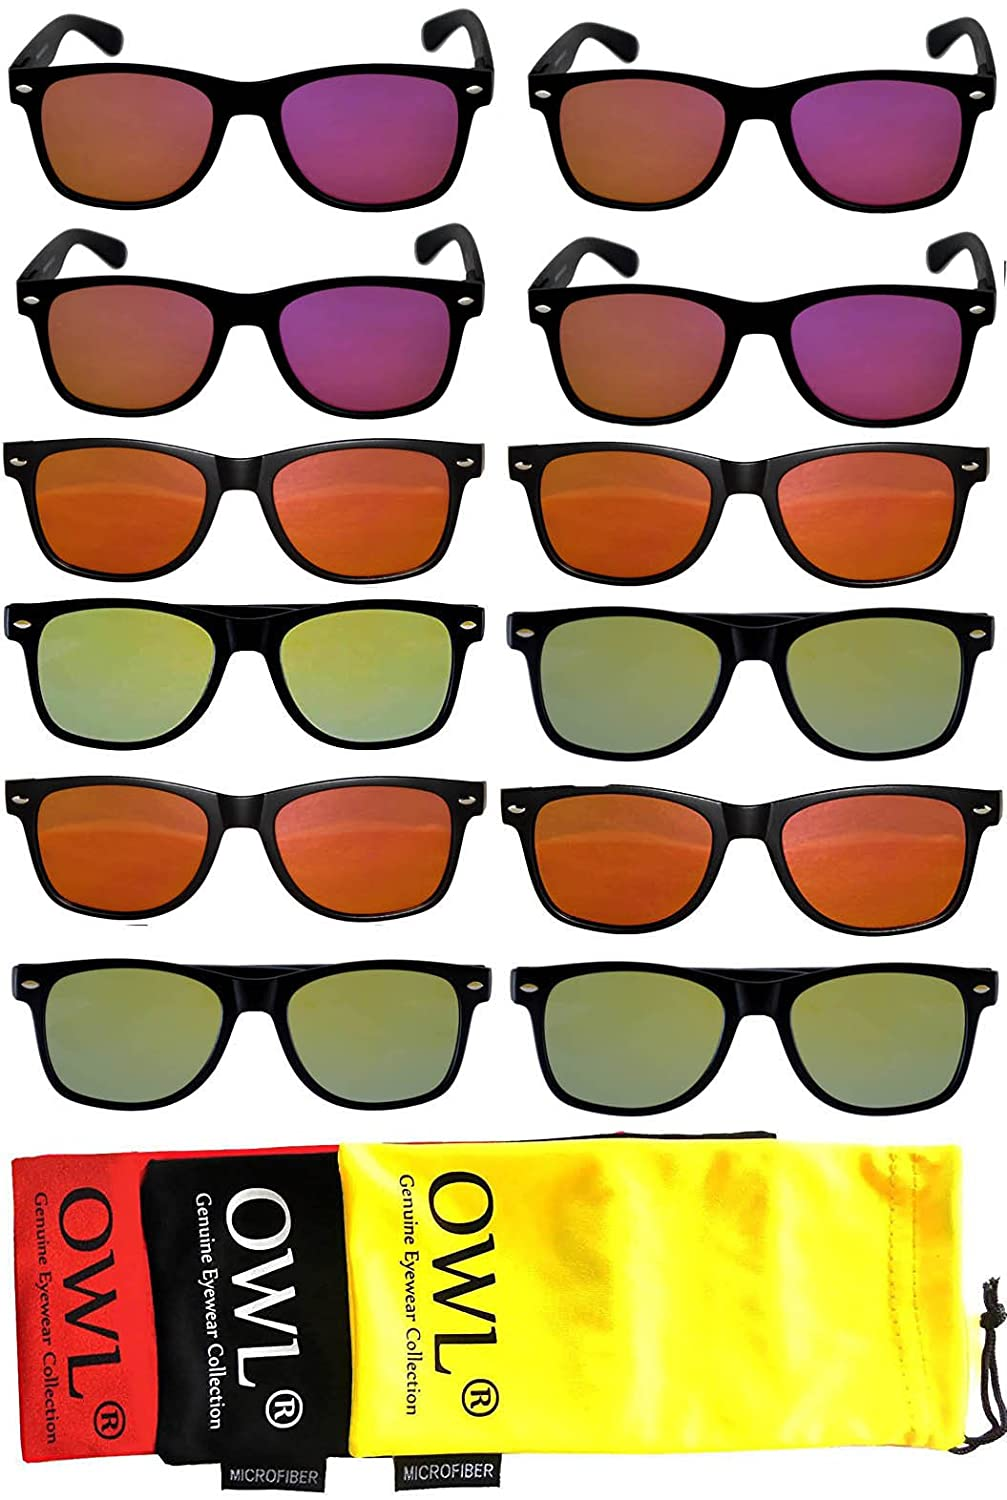 ad32a02886 Amazon.com  Owl Retro Vintage Sunglasses Colorful Mirror Lens Matte Frame  10 Pairs  Clothing